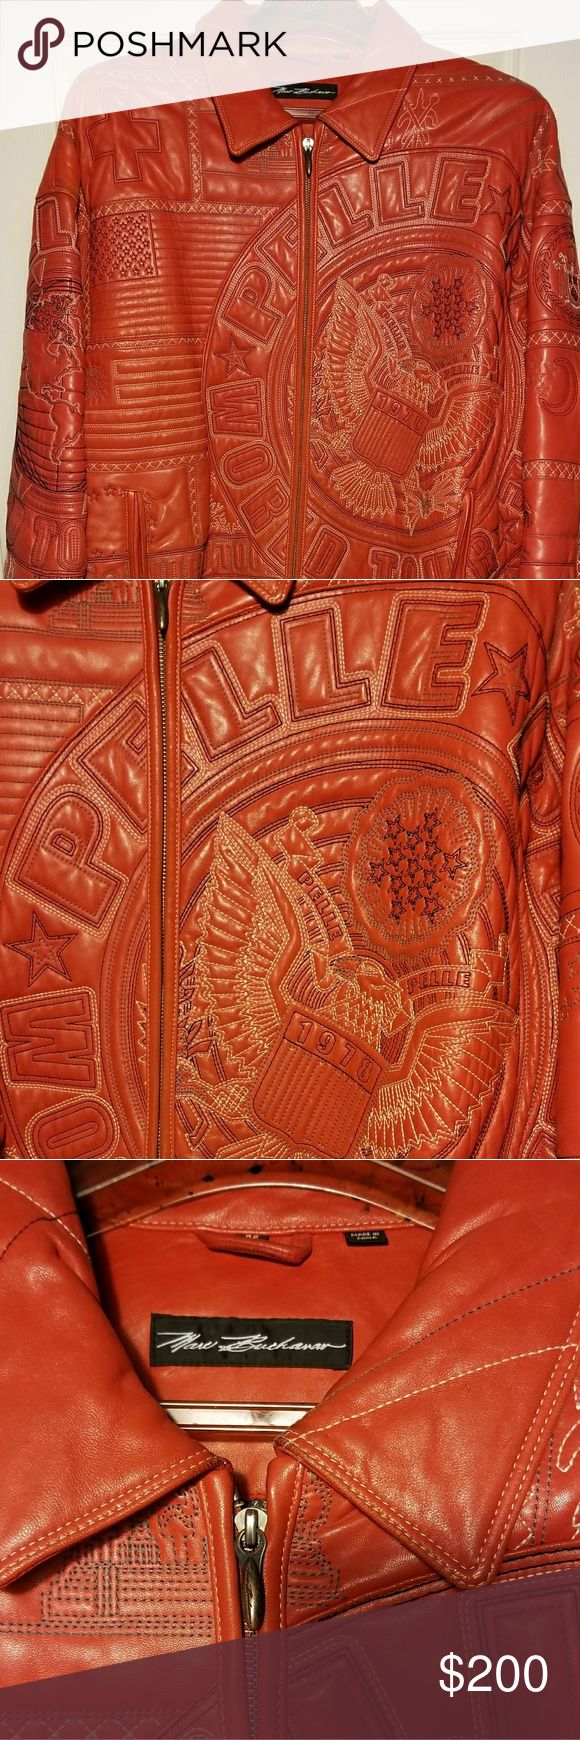 *Vintage* Red Stitched Leather Pelle Pelle  Red Stitched Leather Pelle Pelle in good condition with minor worn marks on the sleeves and pockets. Great Buy!!! Pelle Pelle Jackets & Coats